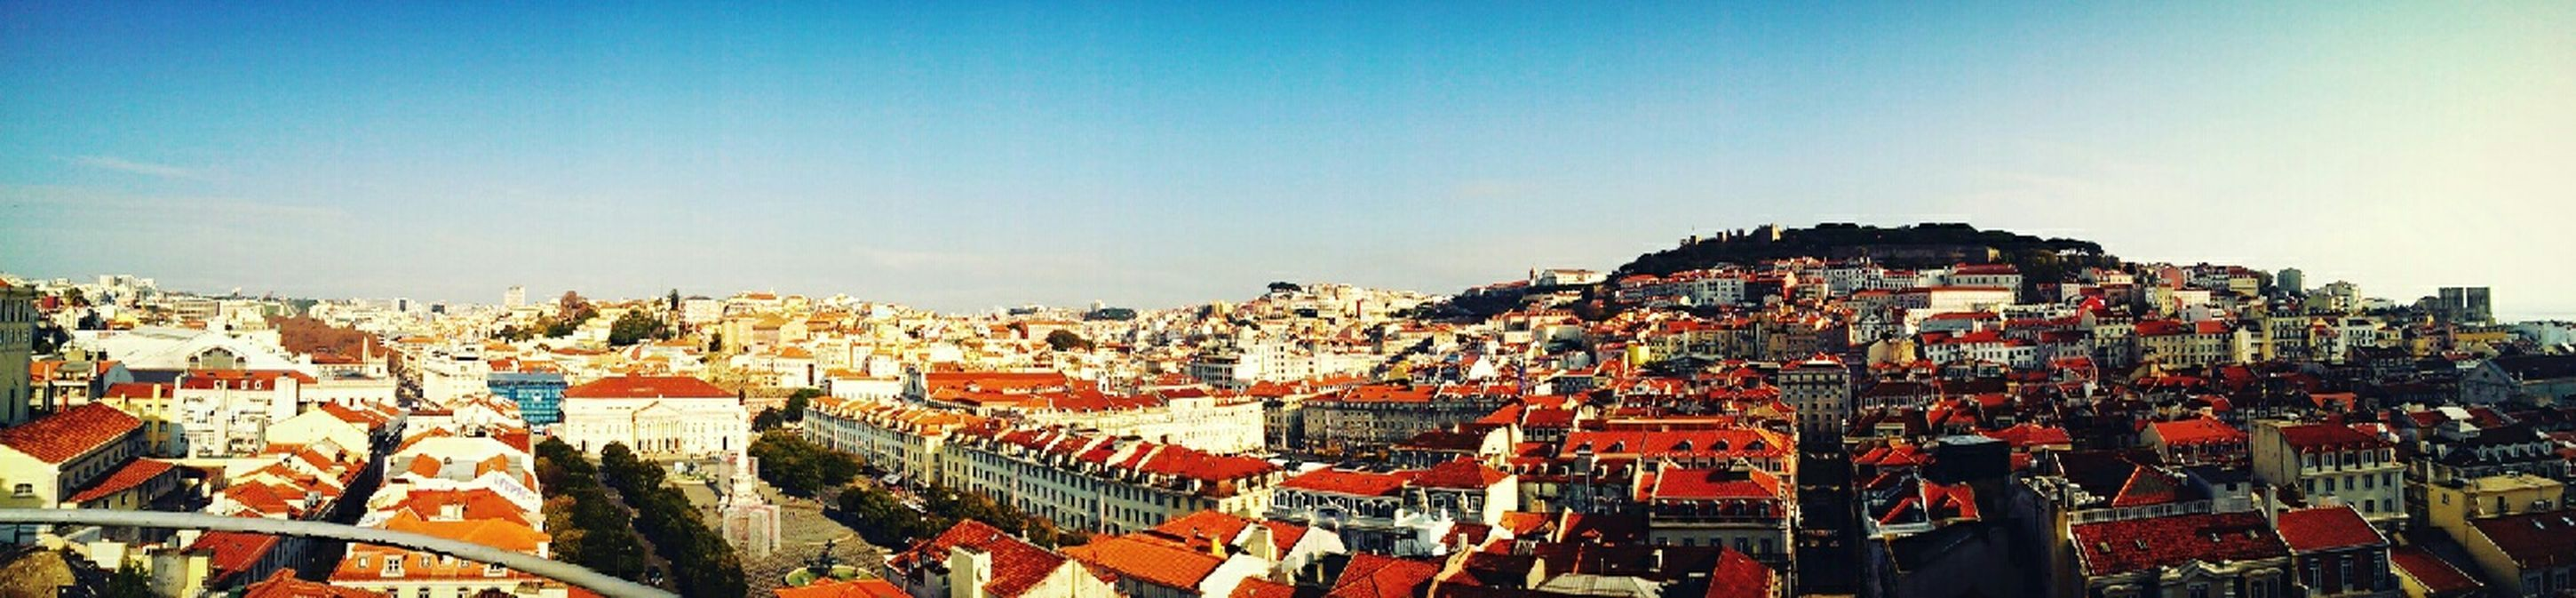 View on the city of Lisbon from Elevador De Santa Justa elevator, Urban Landscape Urban Architecture From My Point Of View Lisboa EyeEm Best Shots Traveling